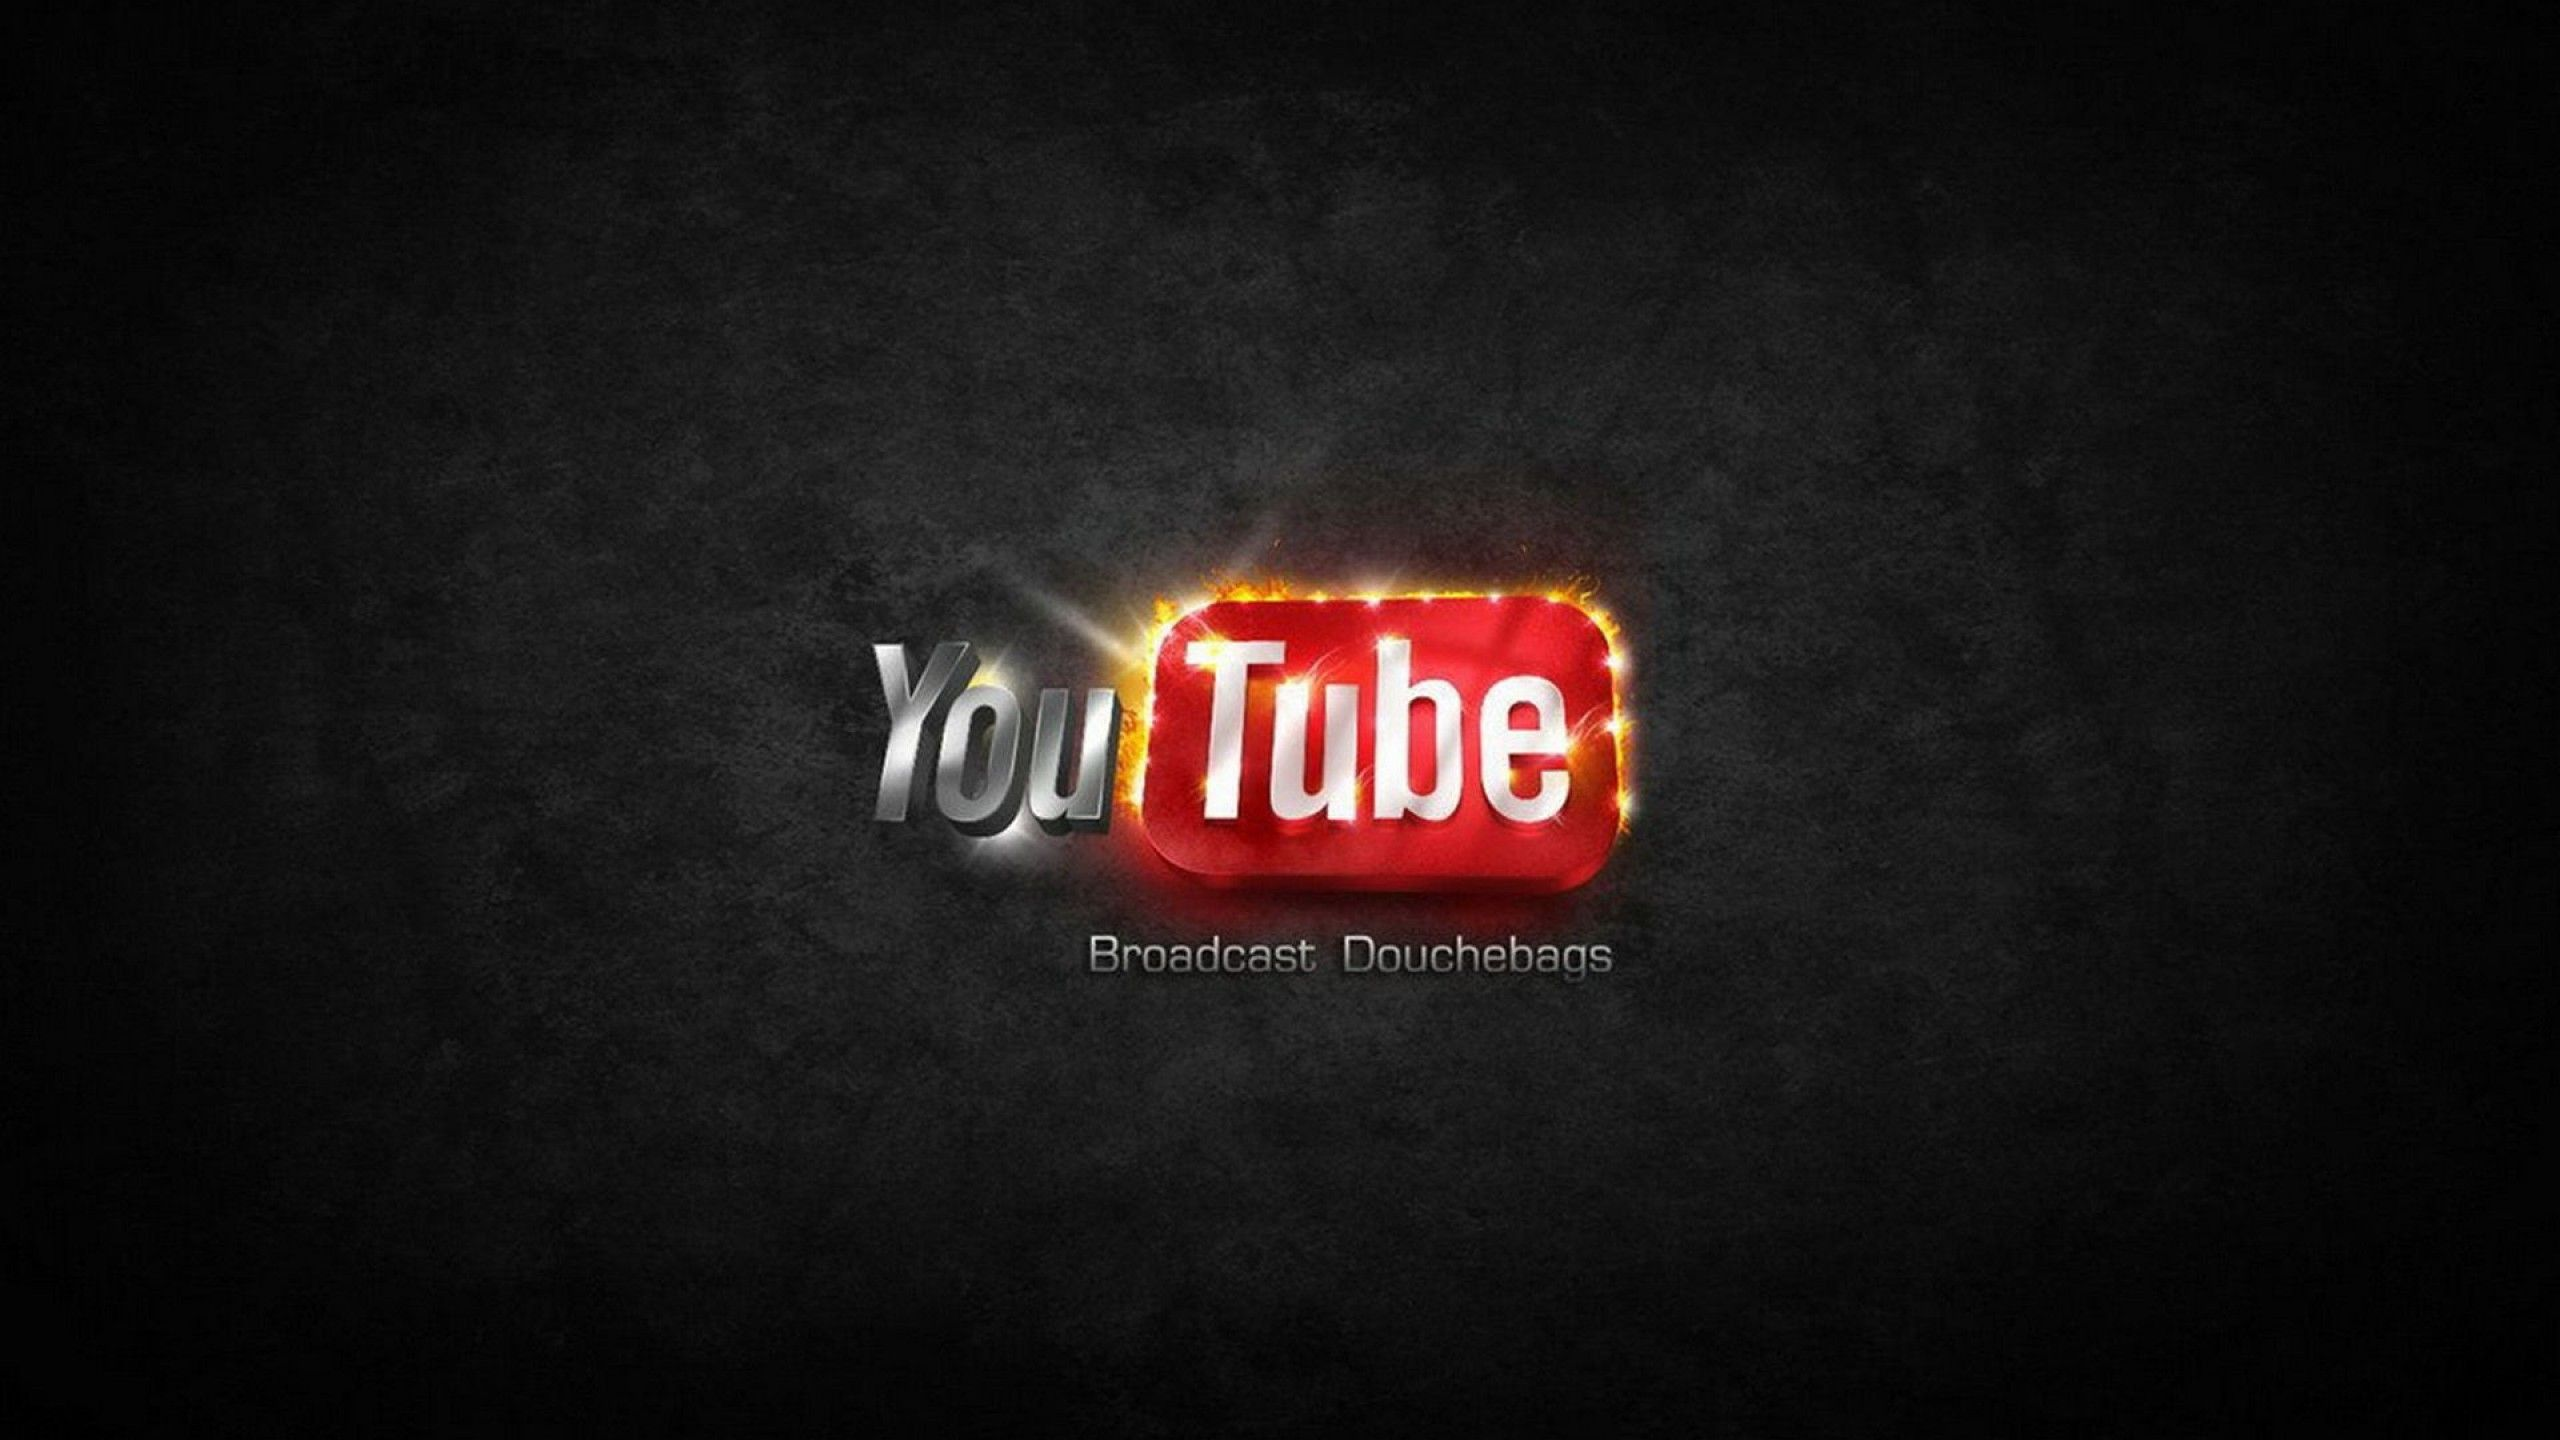 Youtube Gaming Wallpapers Top Free Youtube Gaming